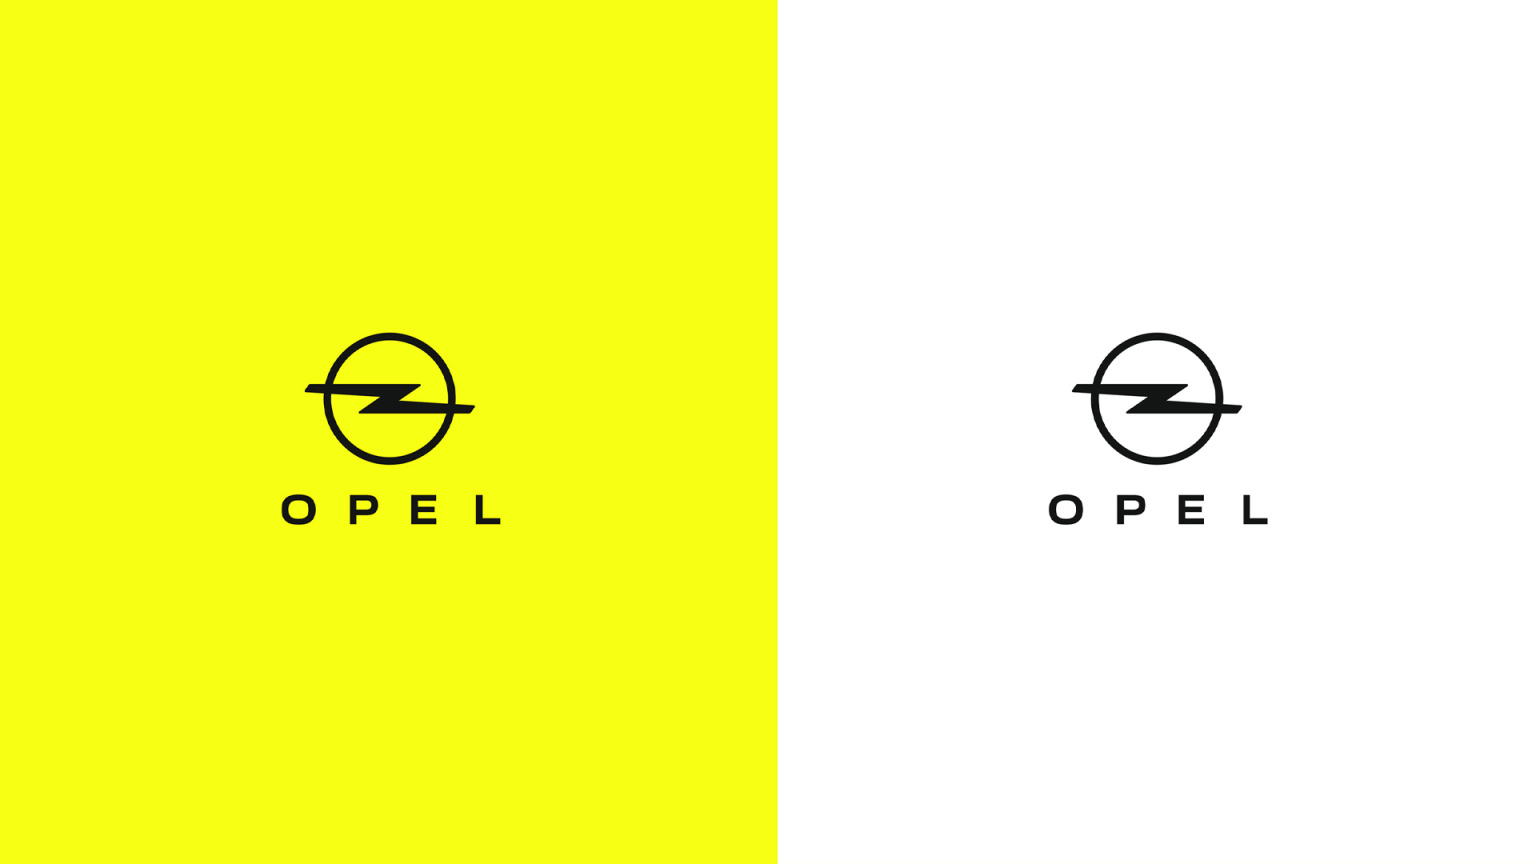 Opel unveils new brand identity in prep for electric era